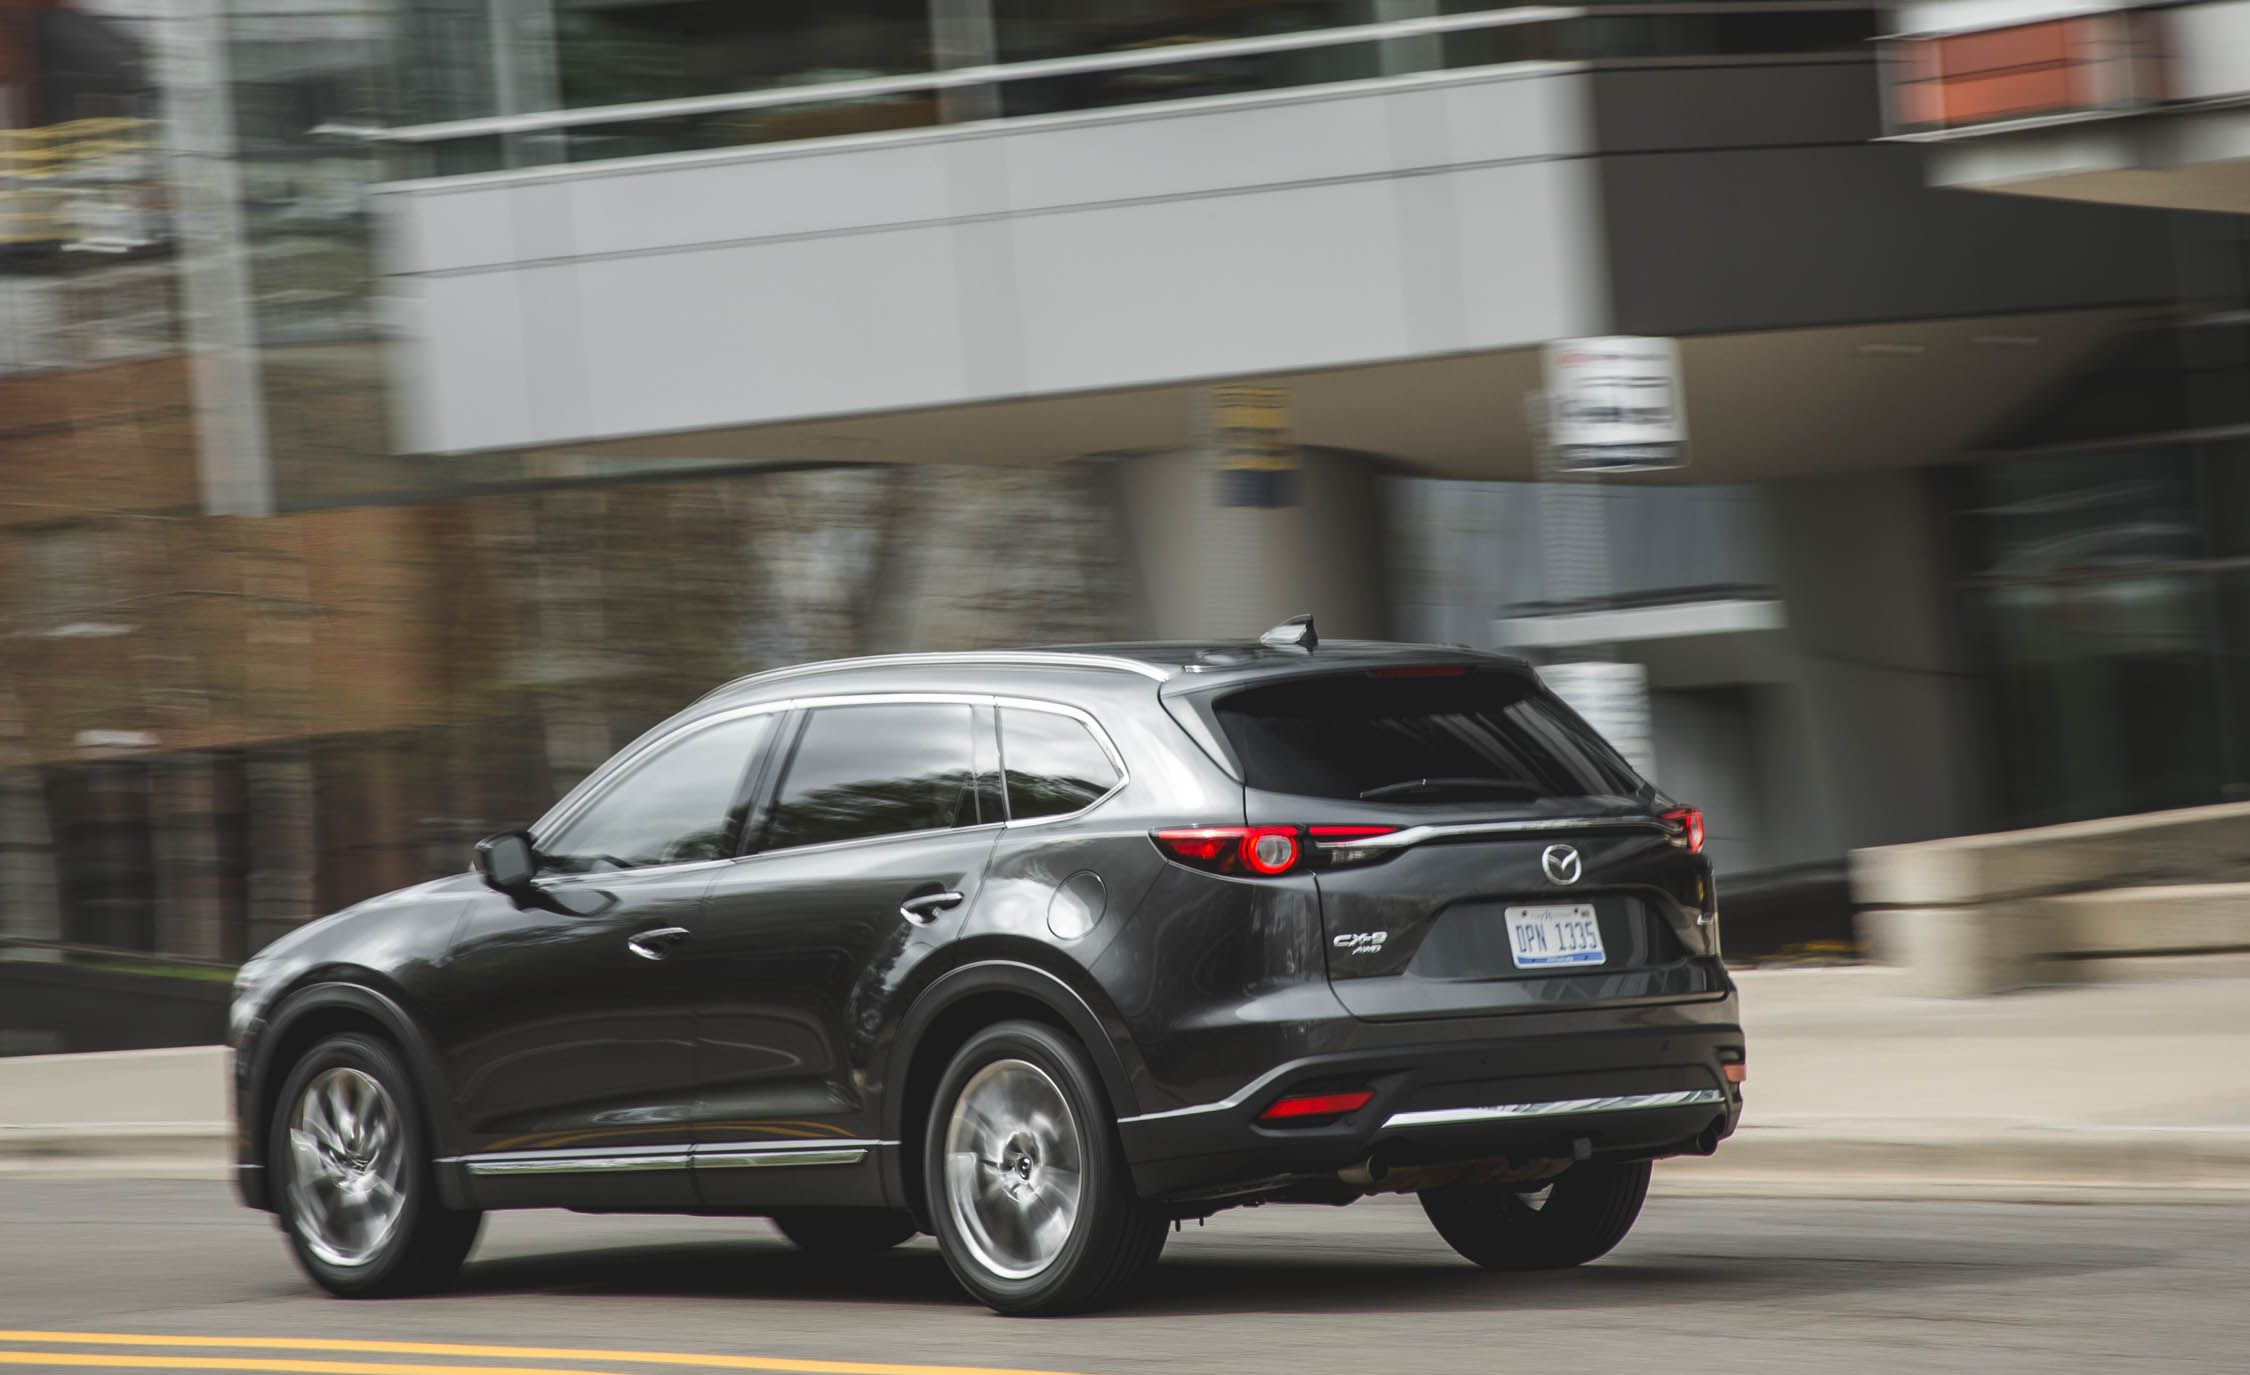 Mazda CX 9 Reviews | Mazda CX 9 Price, Photos, And Specs | Car And Driver